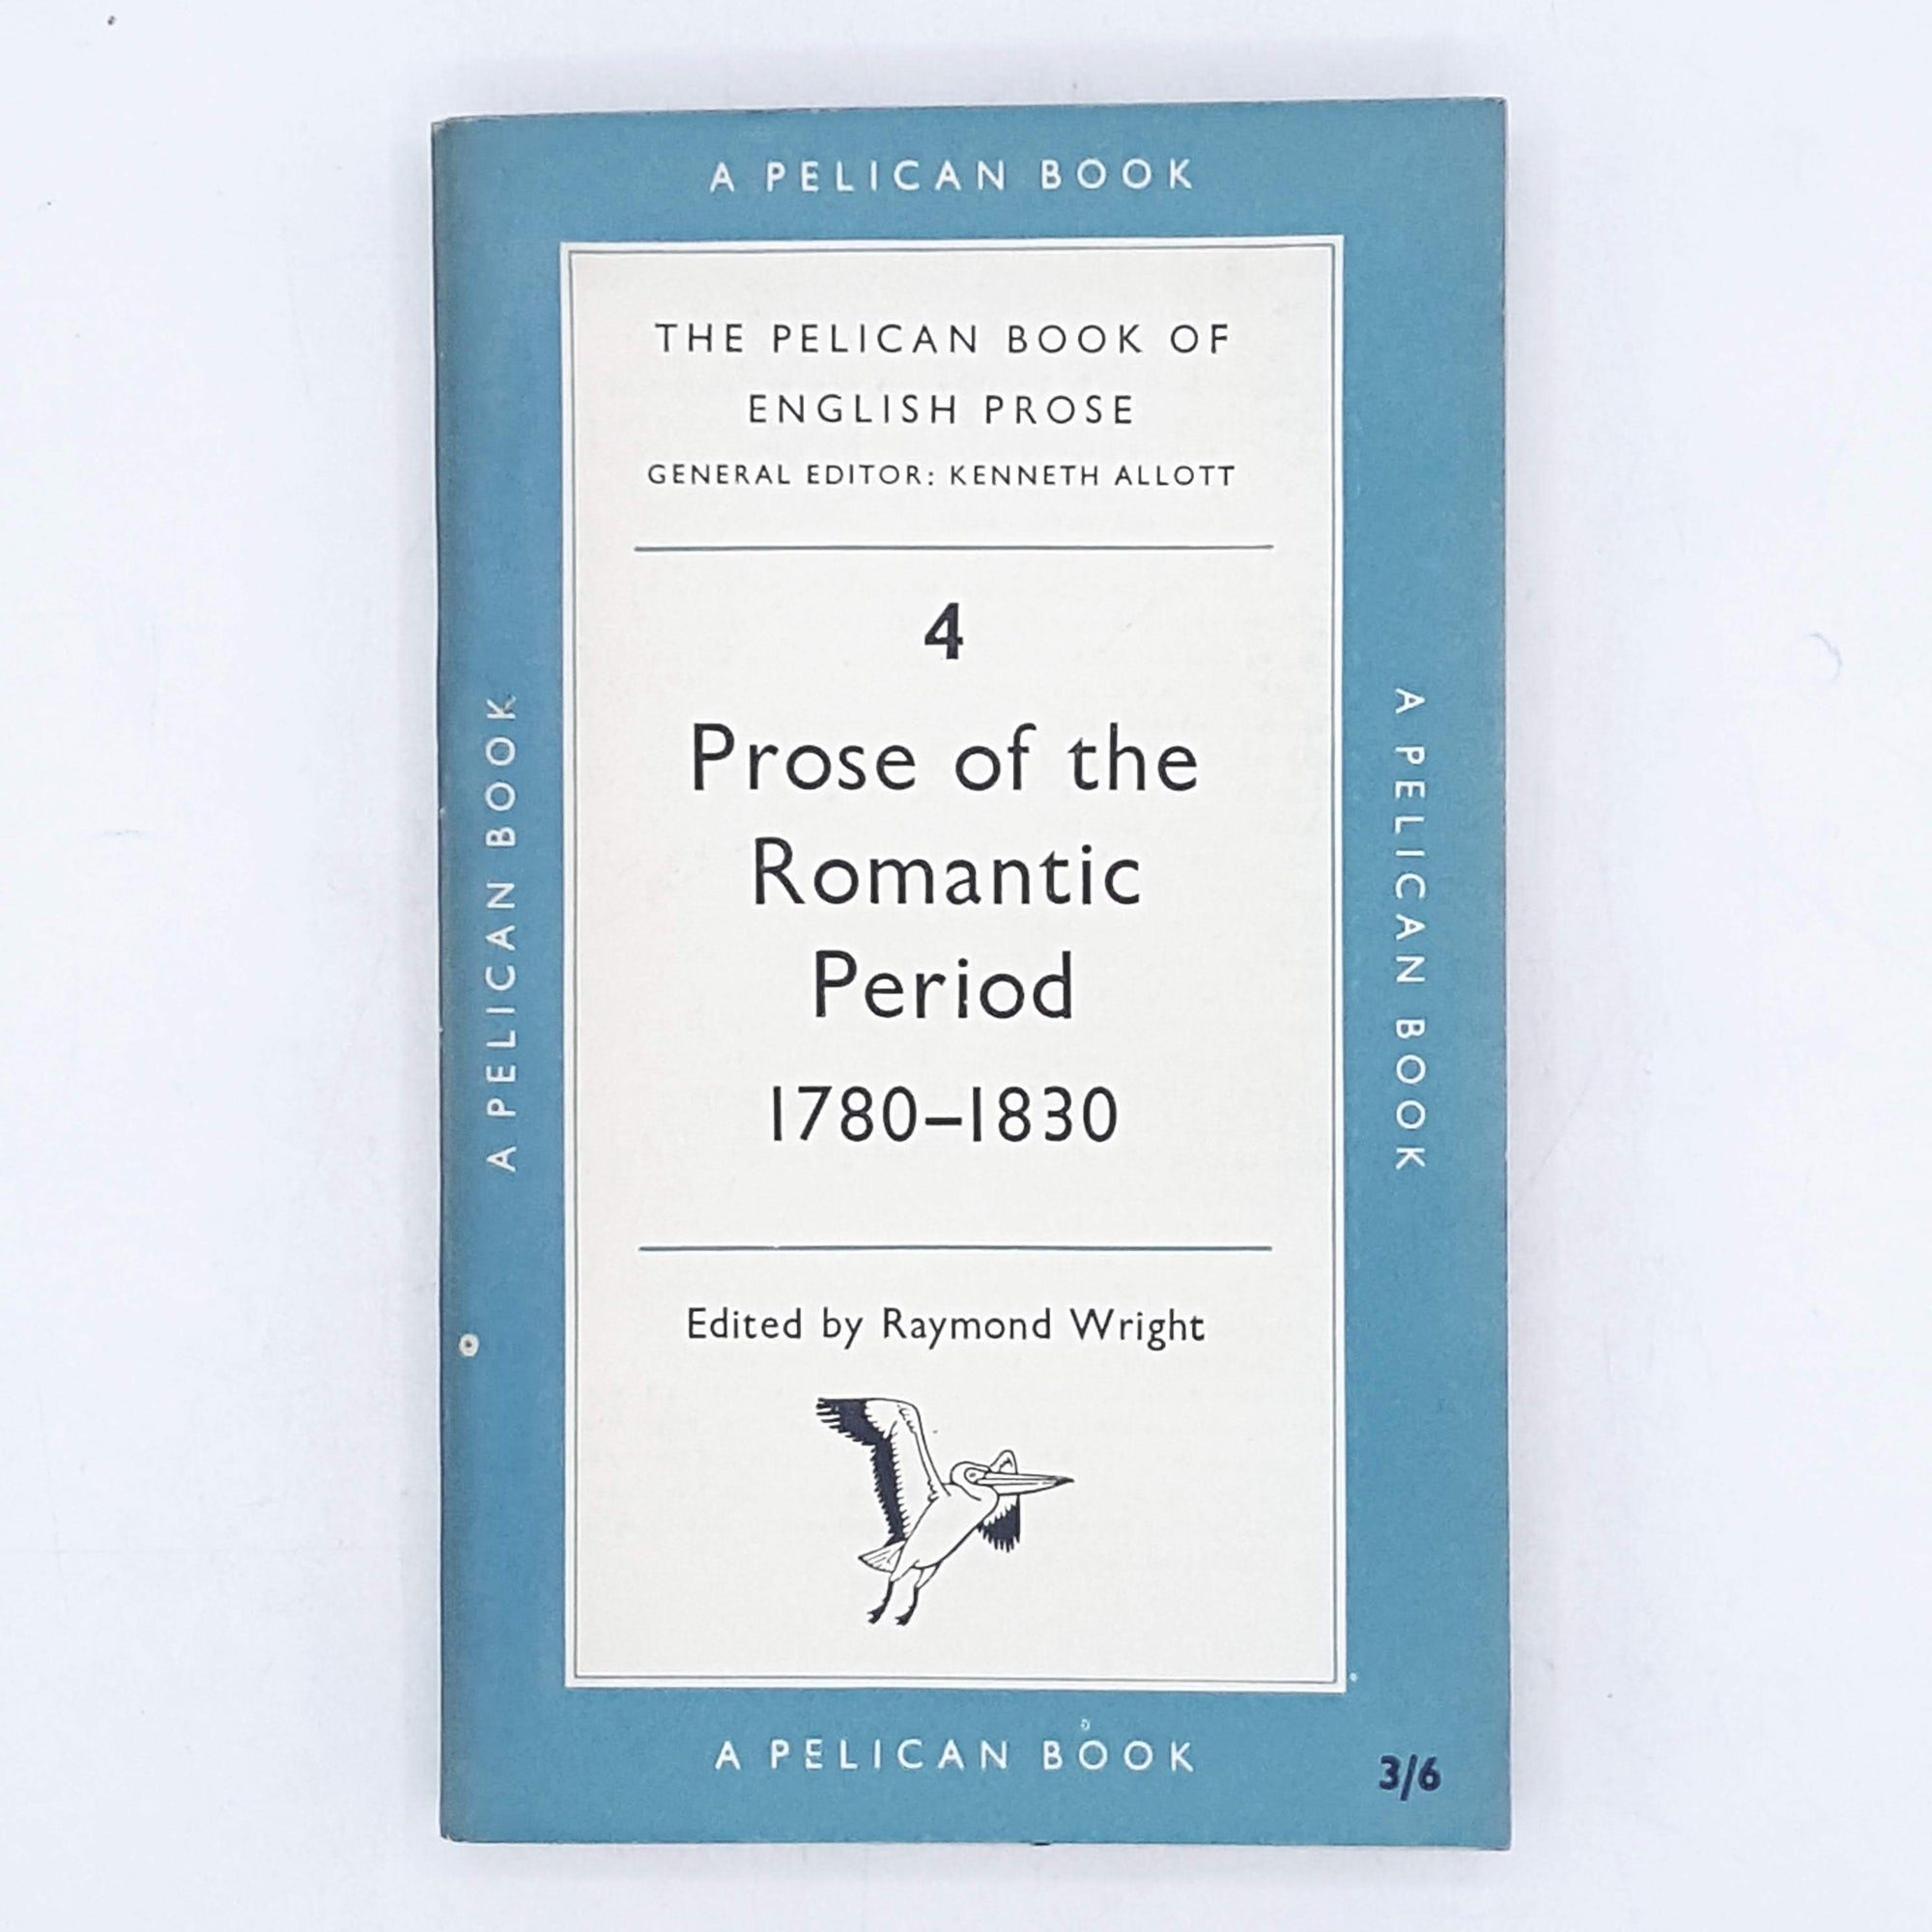 Prose of the Romantic Period 1780 - 1830 by Raymond Wright 1956